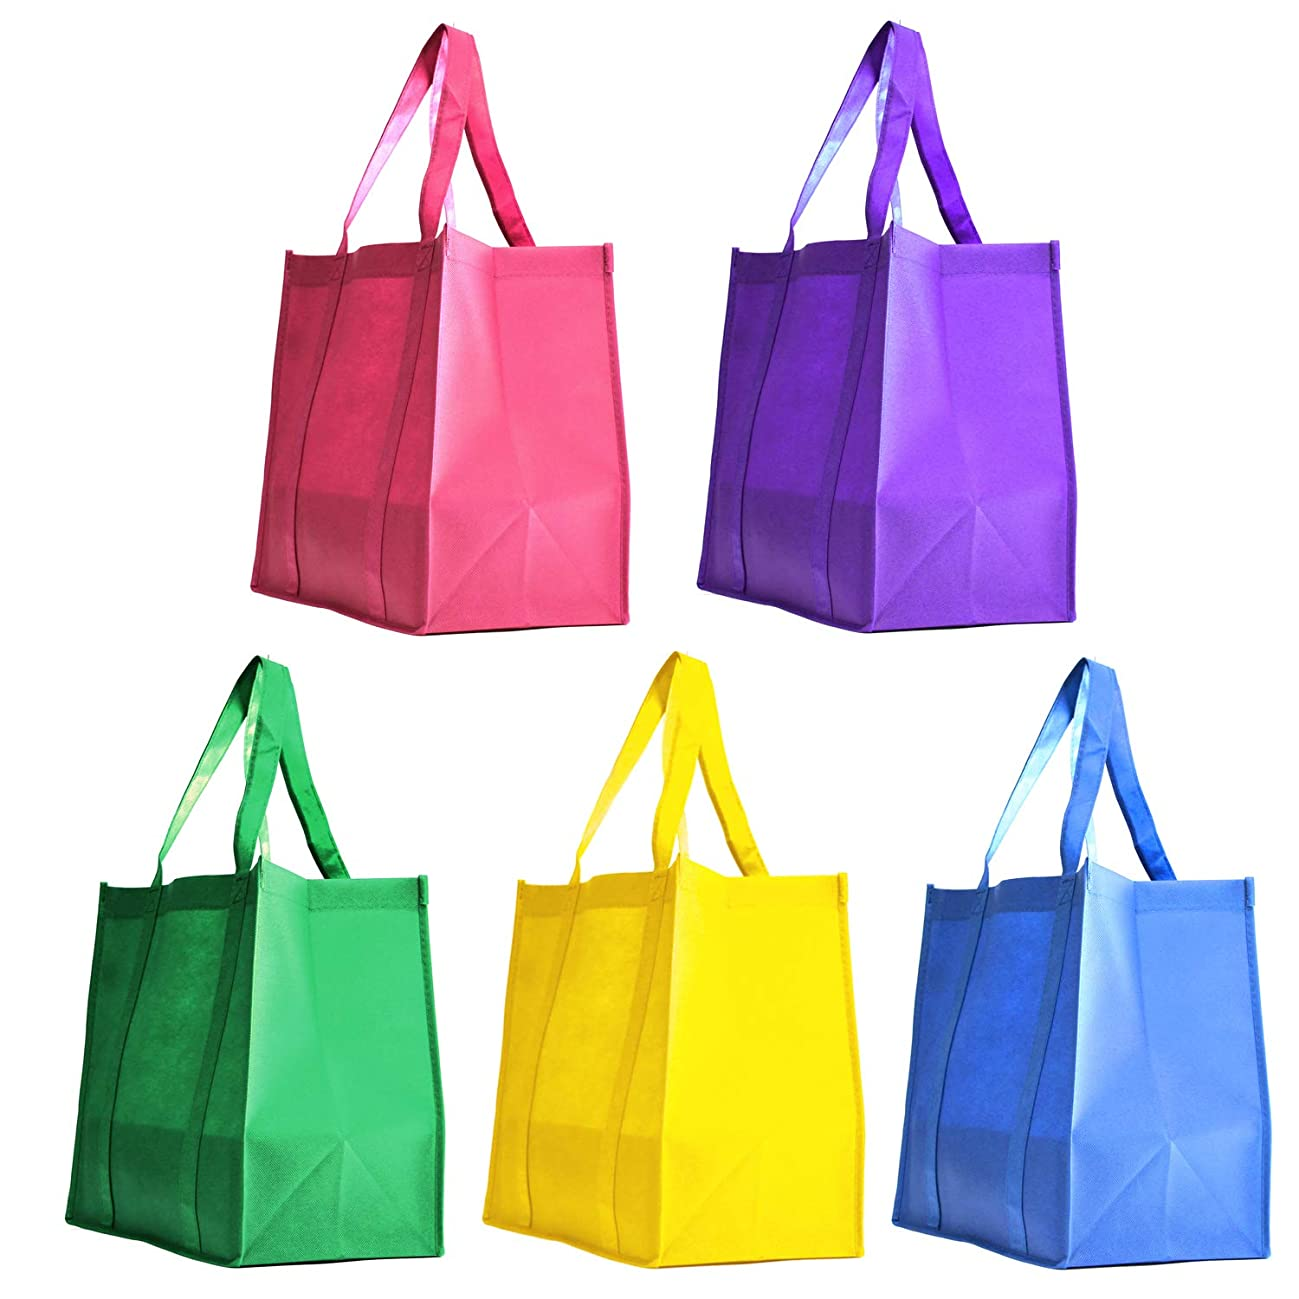 [ 5 Pack ] Assorted Color Party Favor Gift Bags Non-Woven Polypropelyne Grocery Shopping Promotional Tote Bags for Birthday, Wedding Giveaway, Business Promotional Goodie Bags (Summer Breeze, 5 Pack)